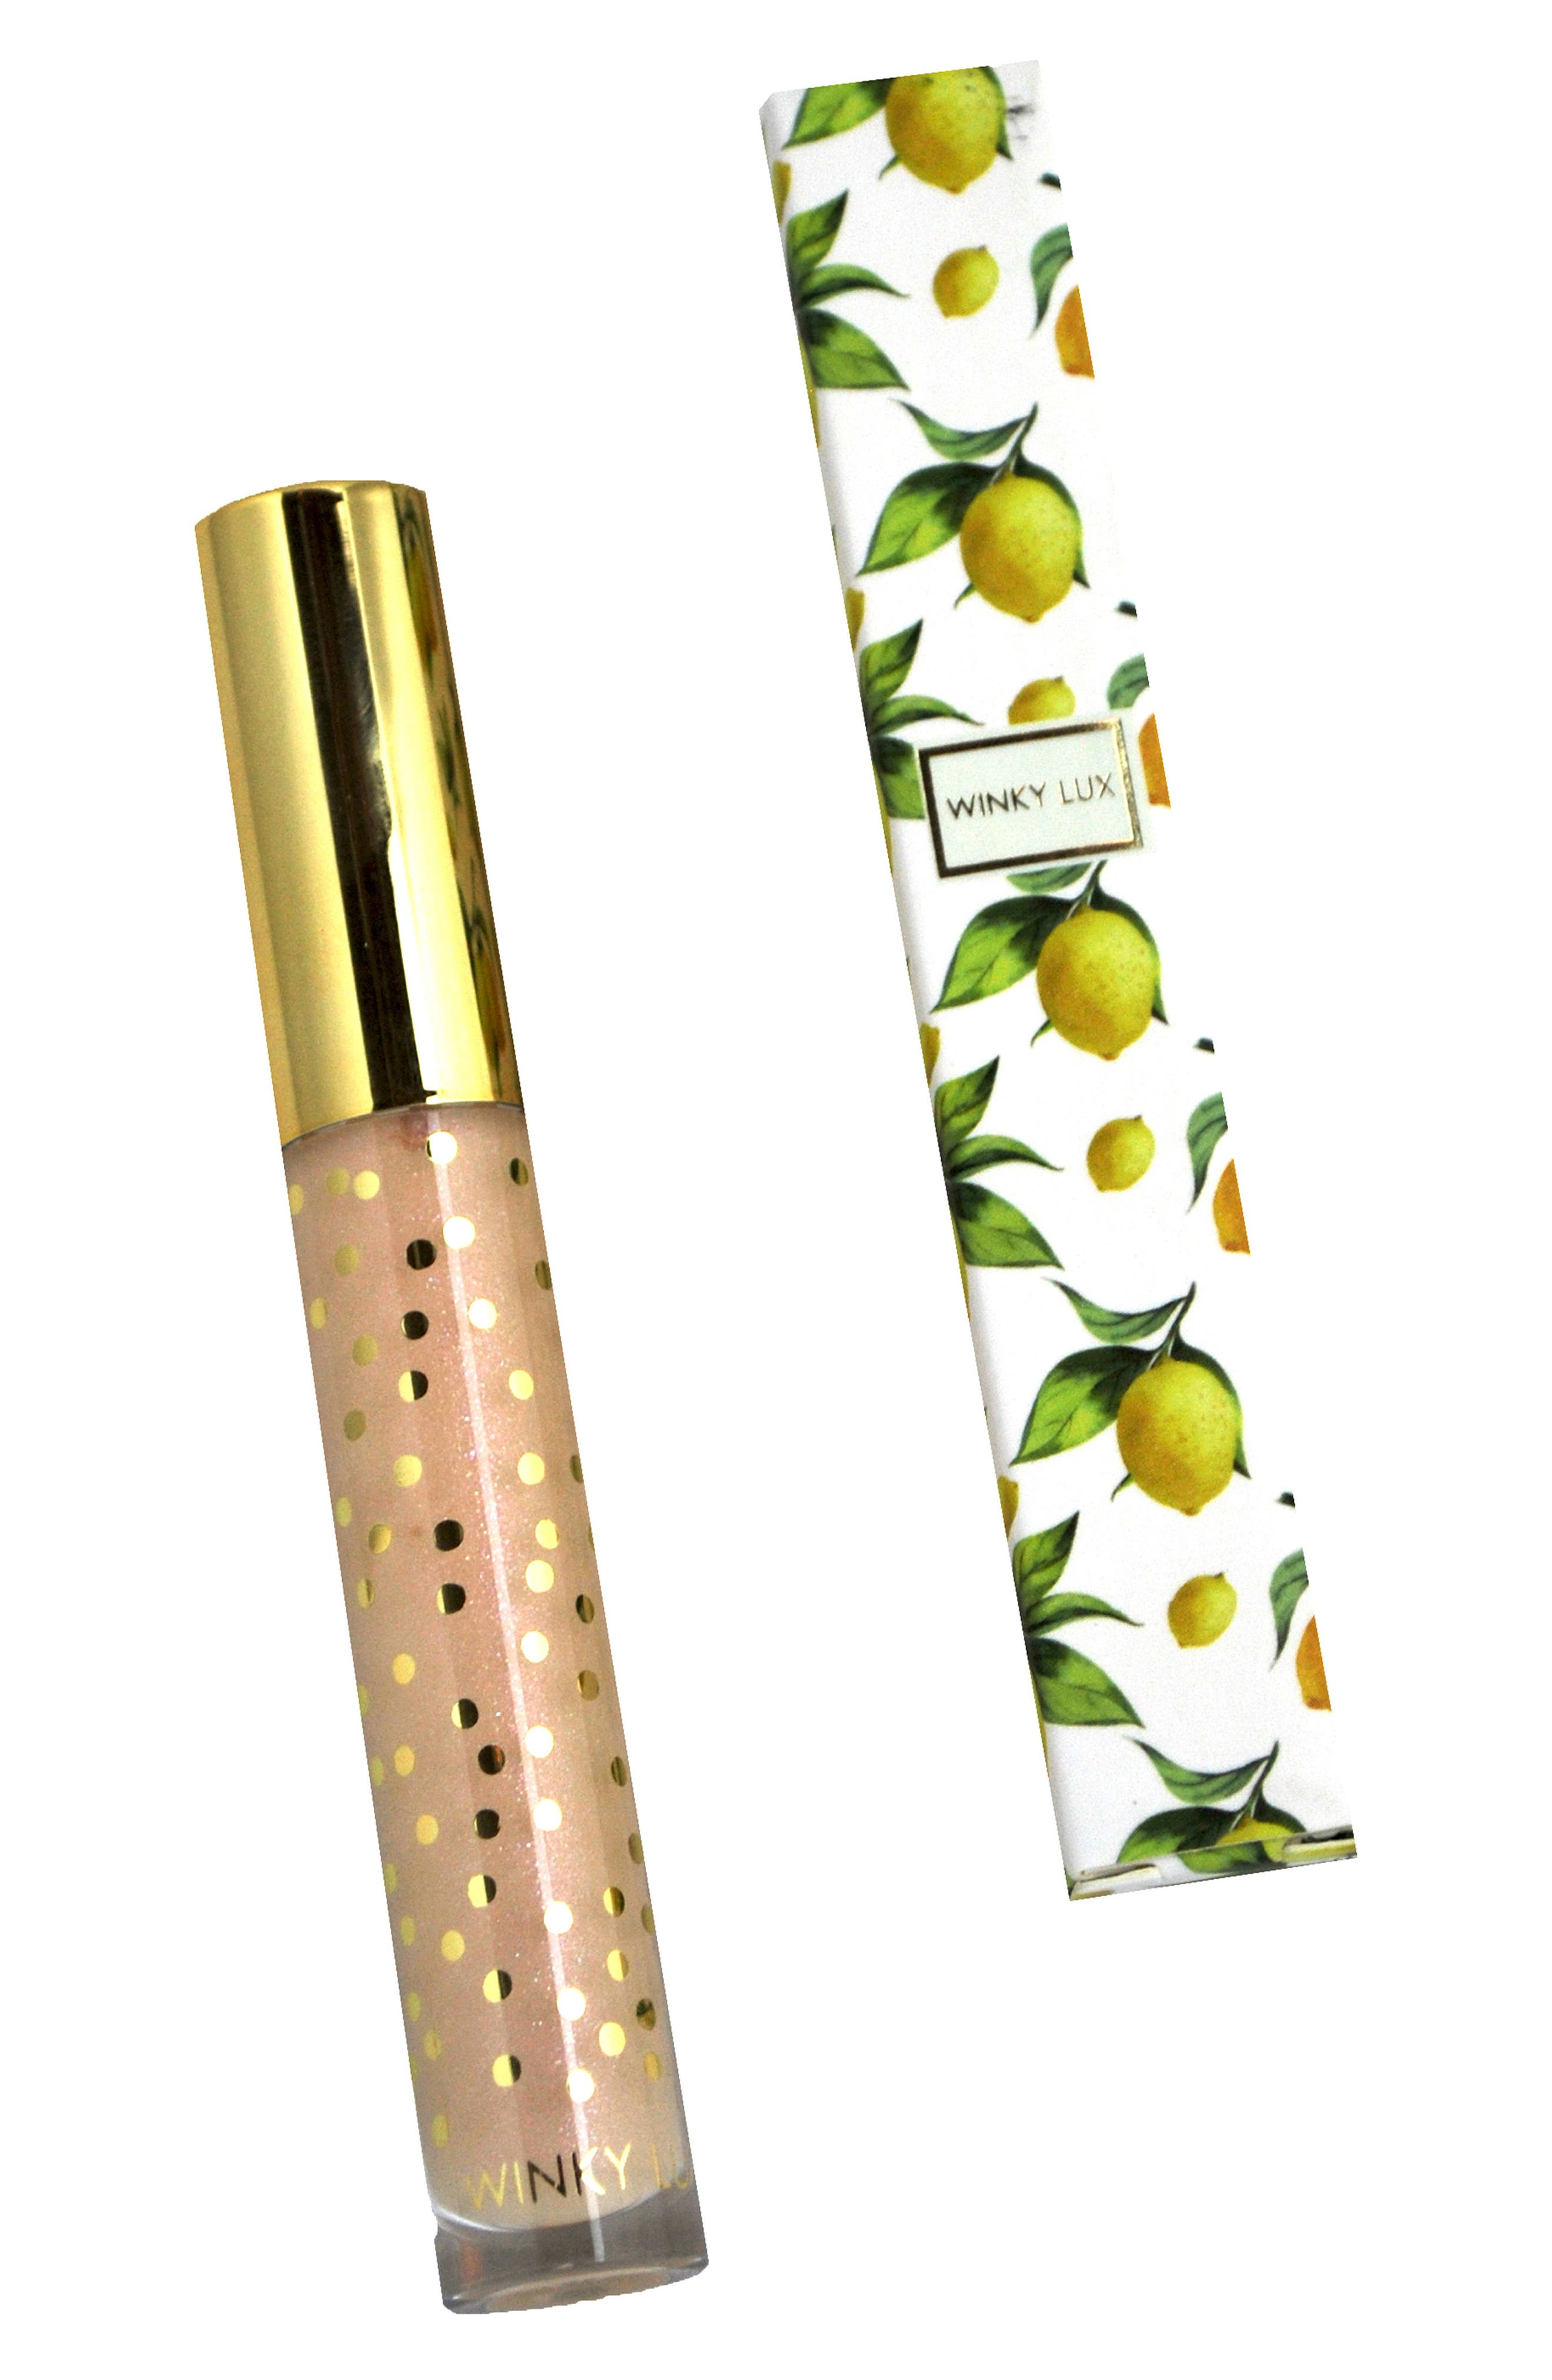 WINKY LUX Pucker Up Lip Plumping Gloss, Main, color, 000